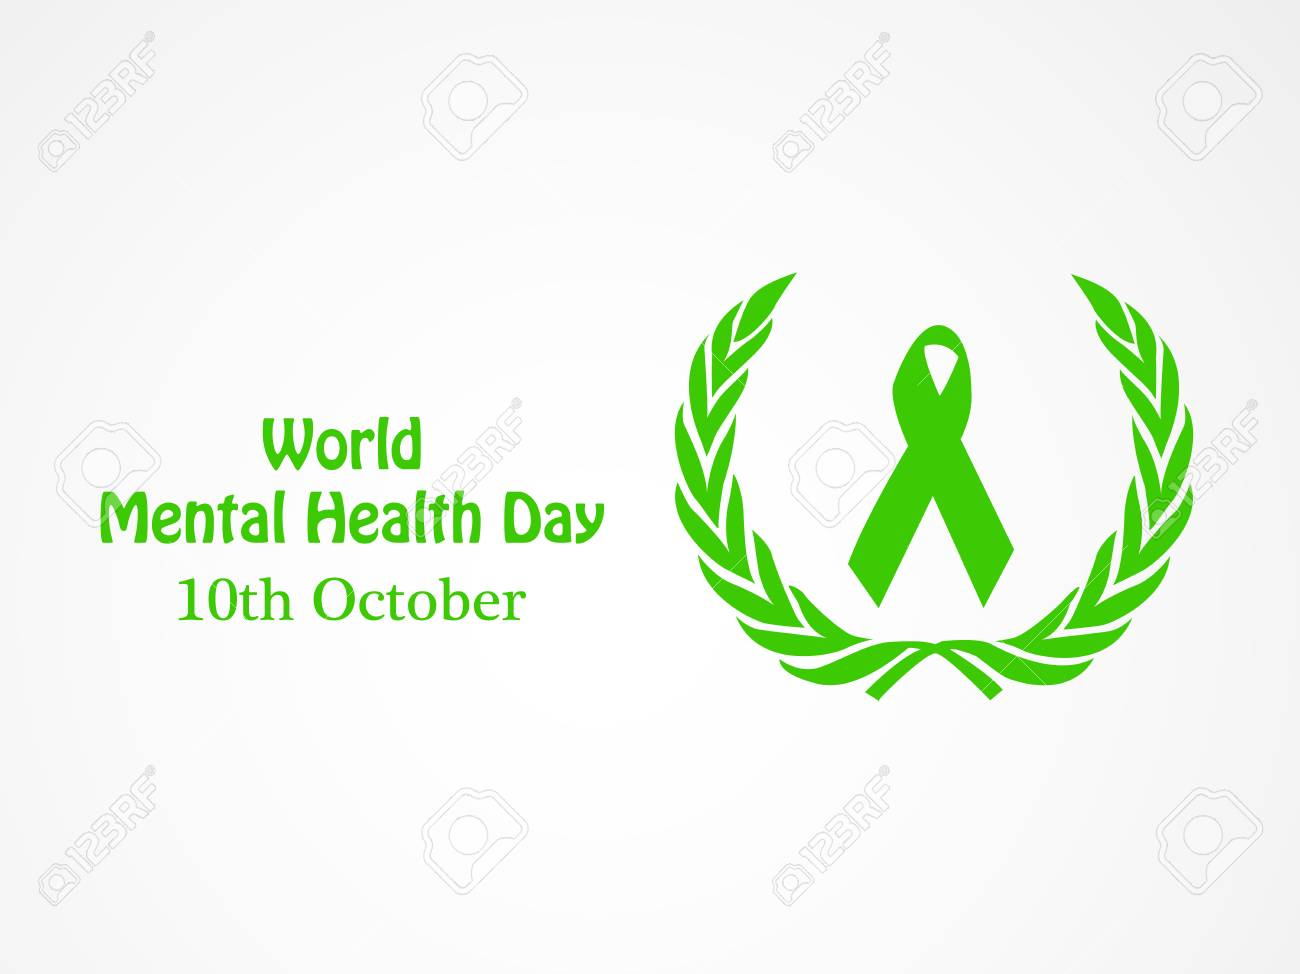 World Mental Health Day Banner Royalty Free Cliparts Vectors And Stock Illustration Image 85869330